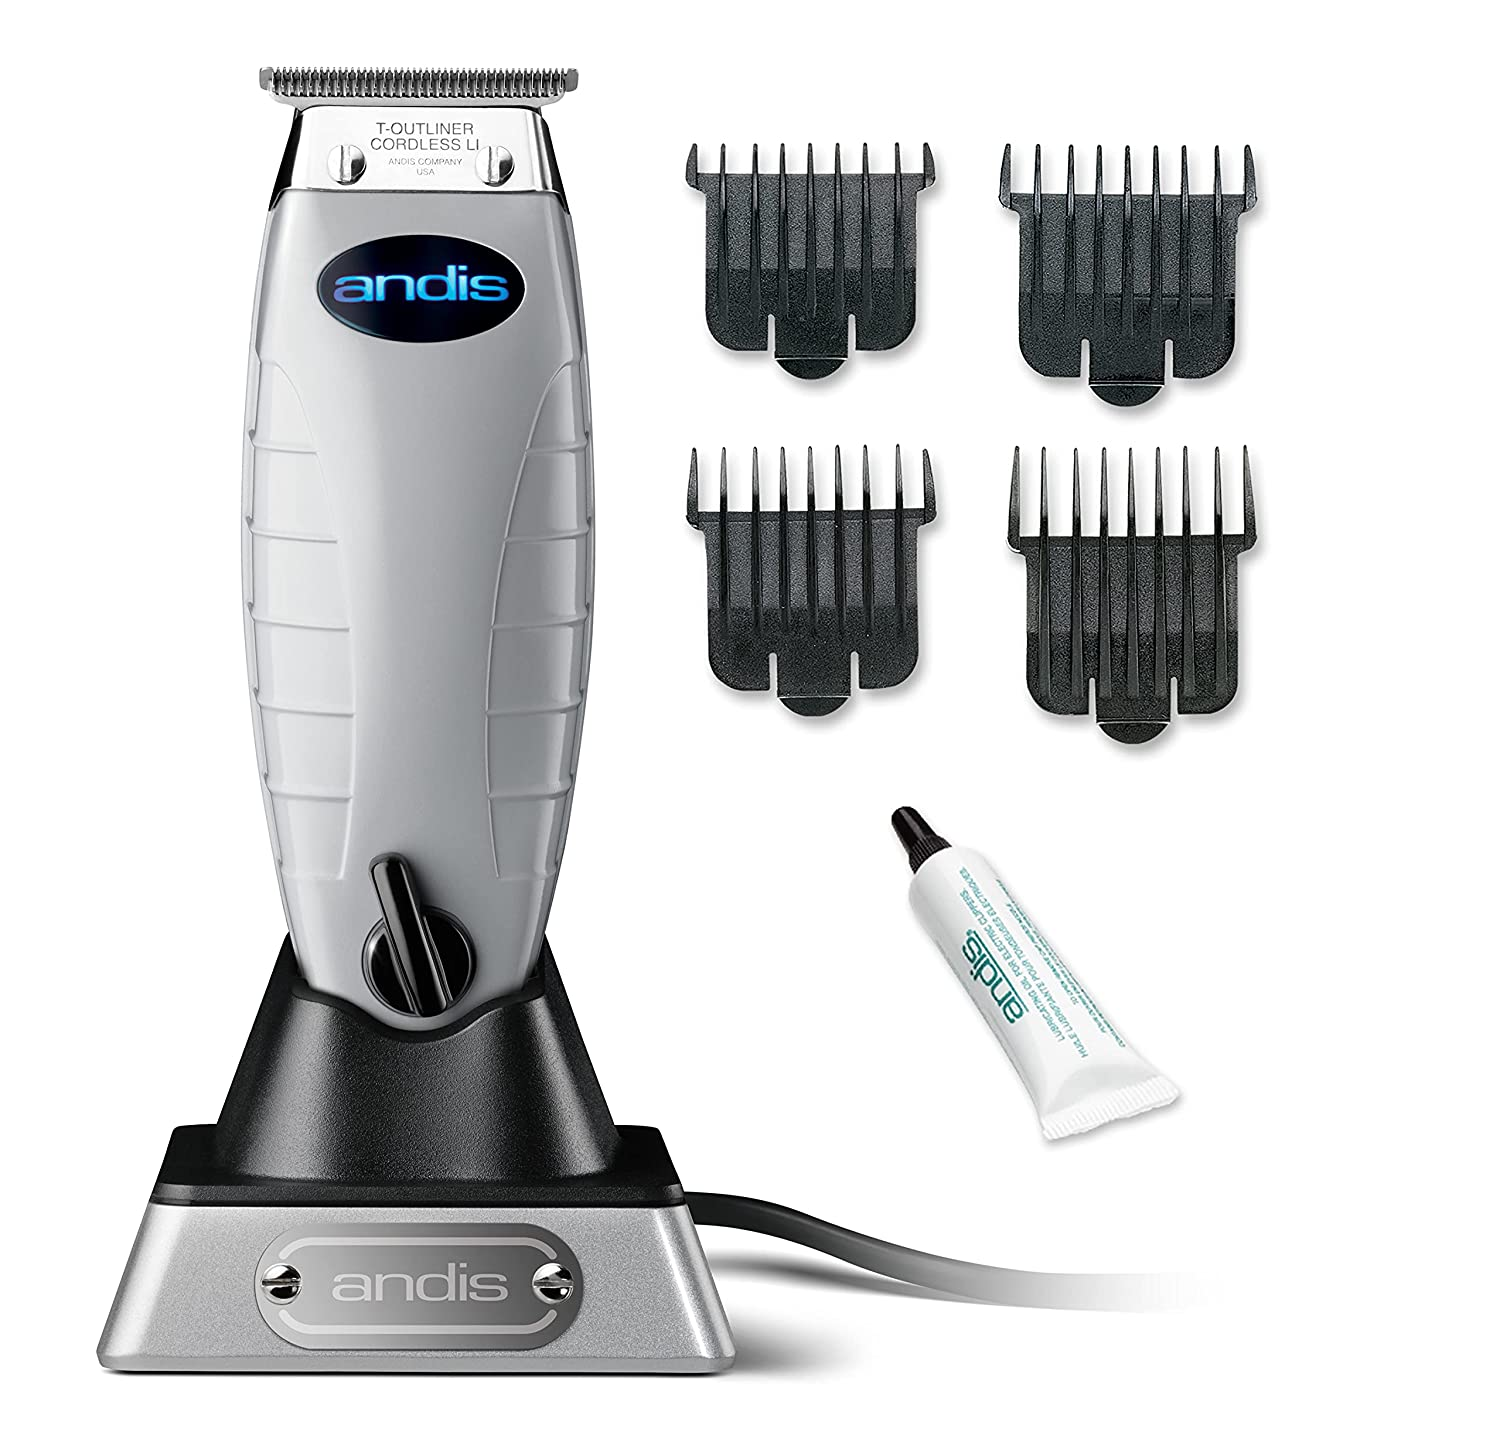 andis professional t-outliner beard or hair trimmer